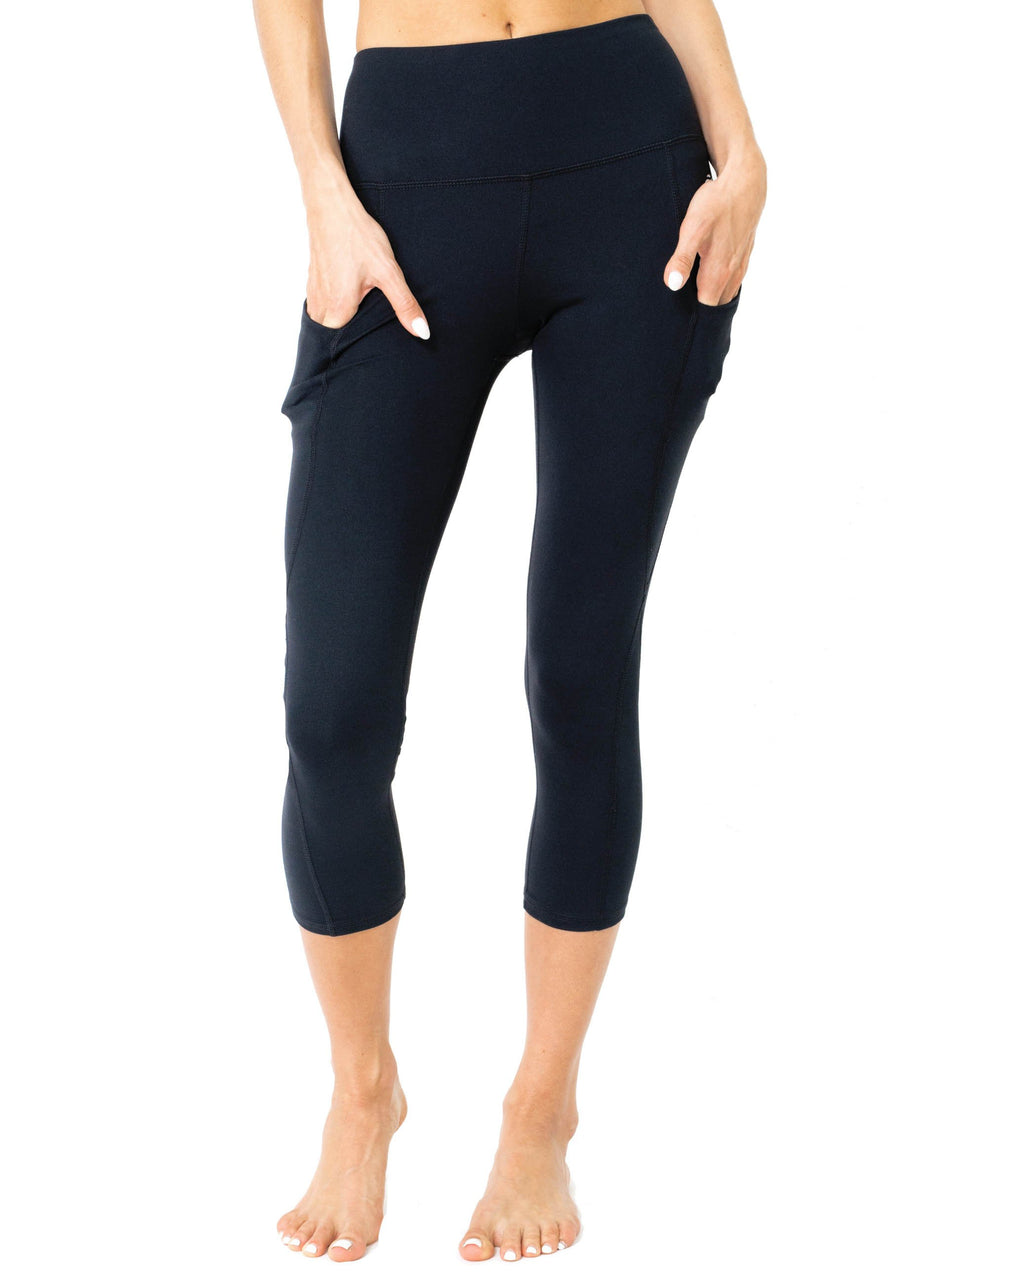 """NO LOGO"" SICKO High-Waisted Capri Leggings With Hip Pockets"